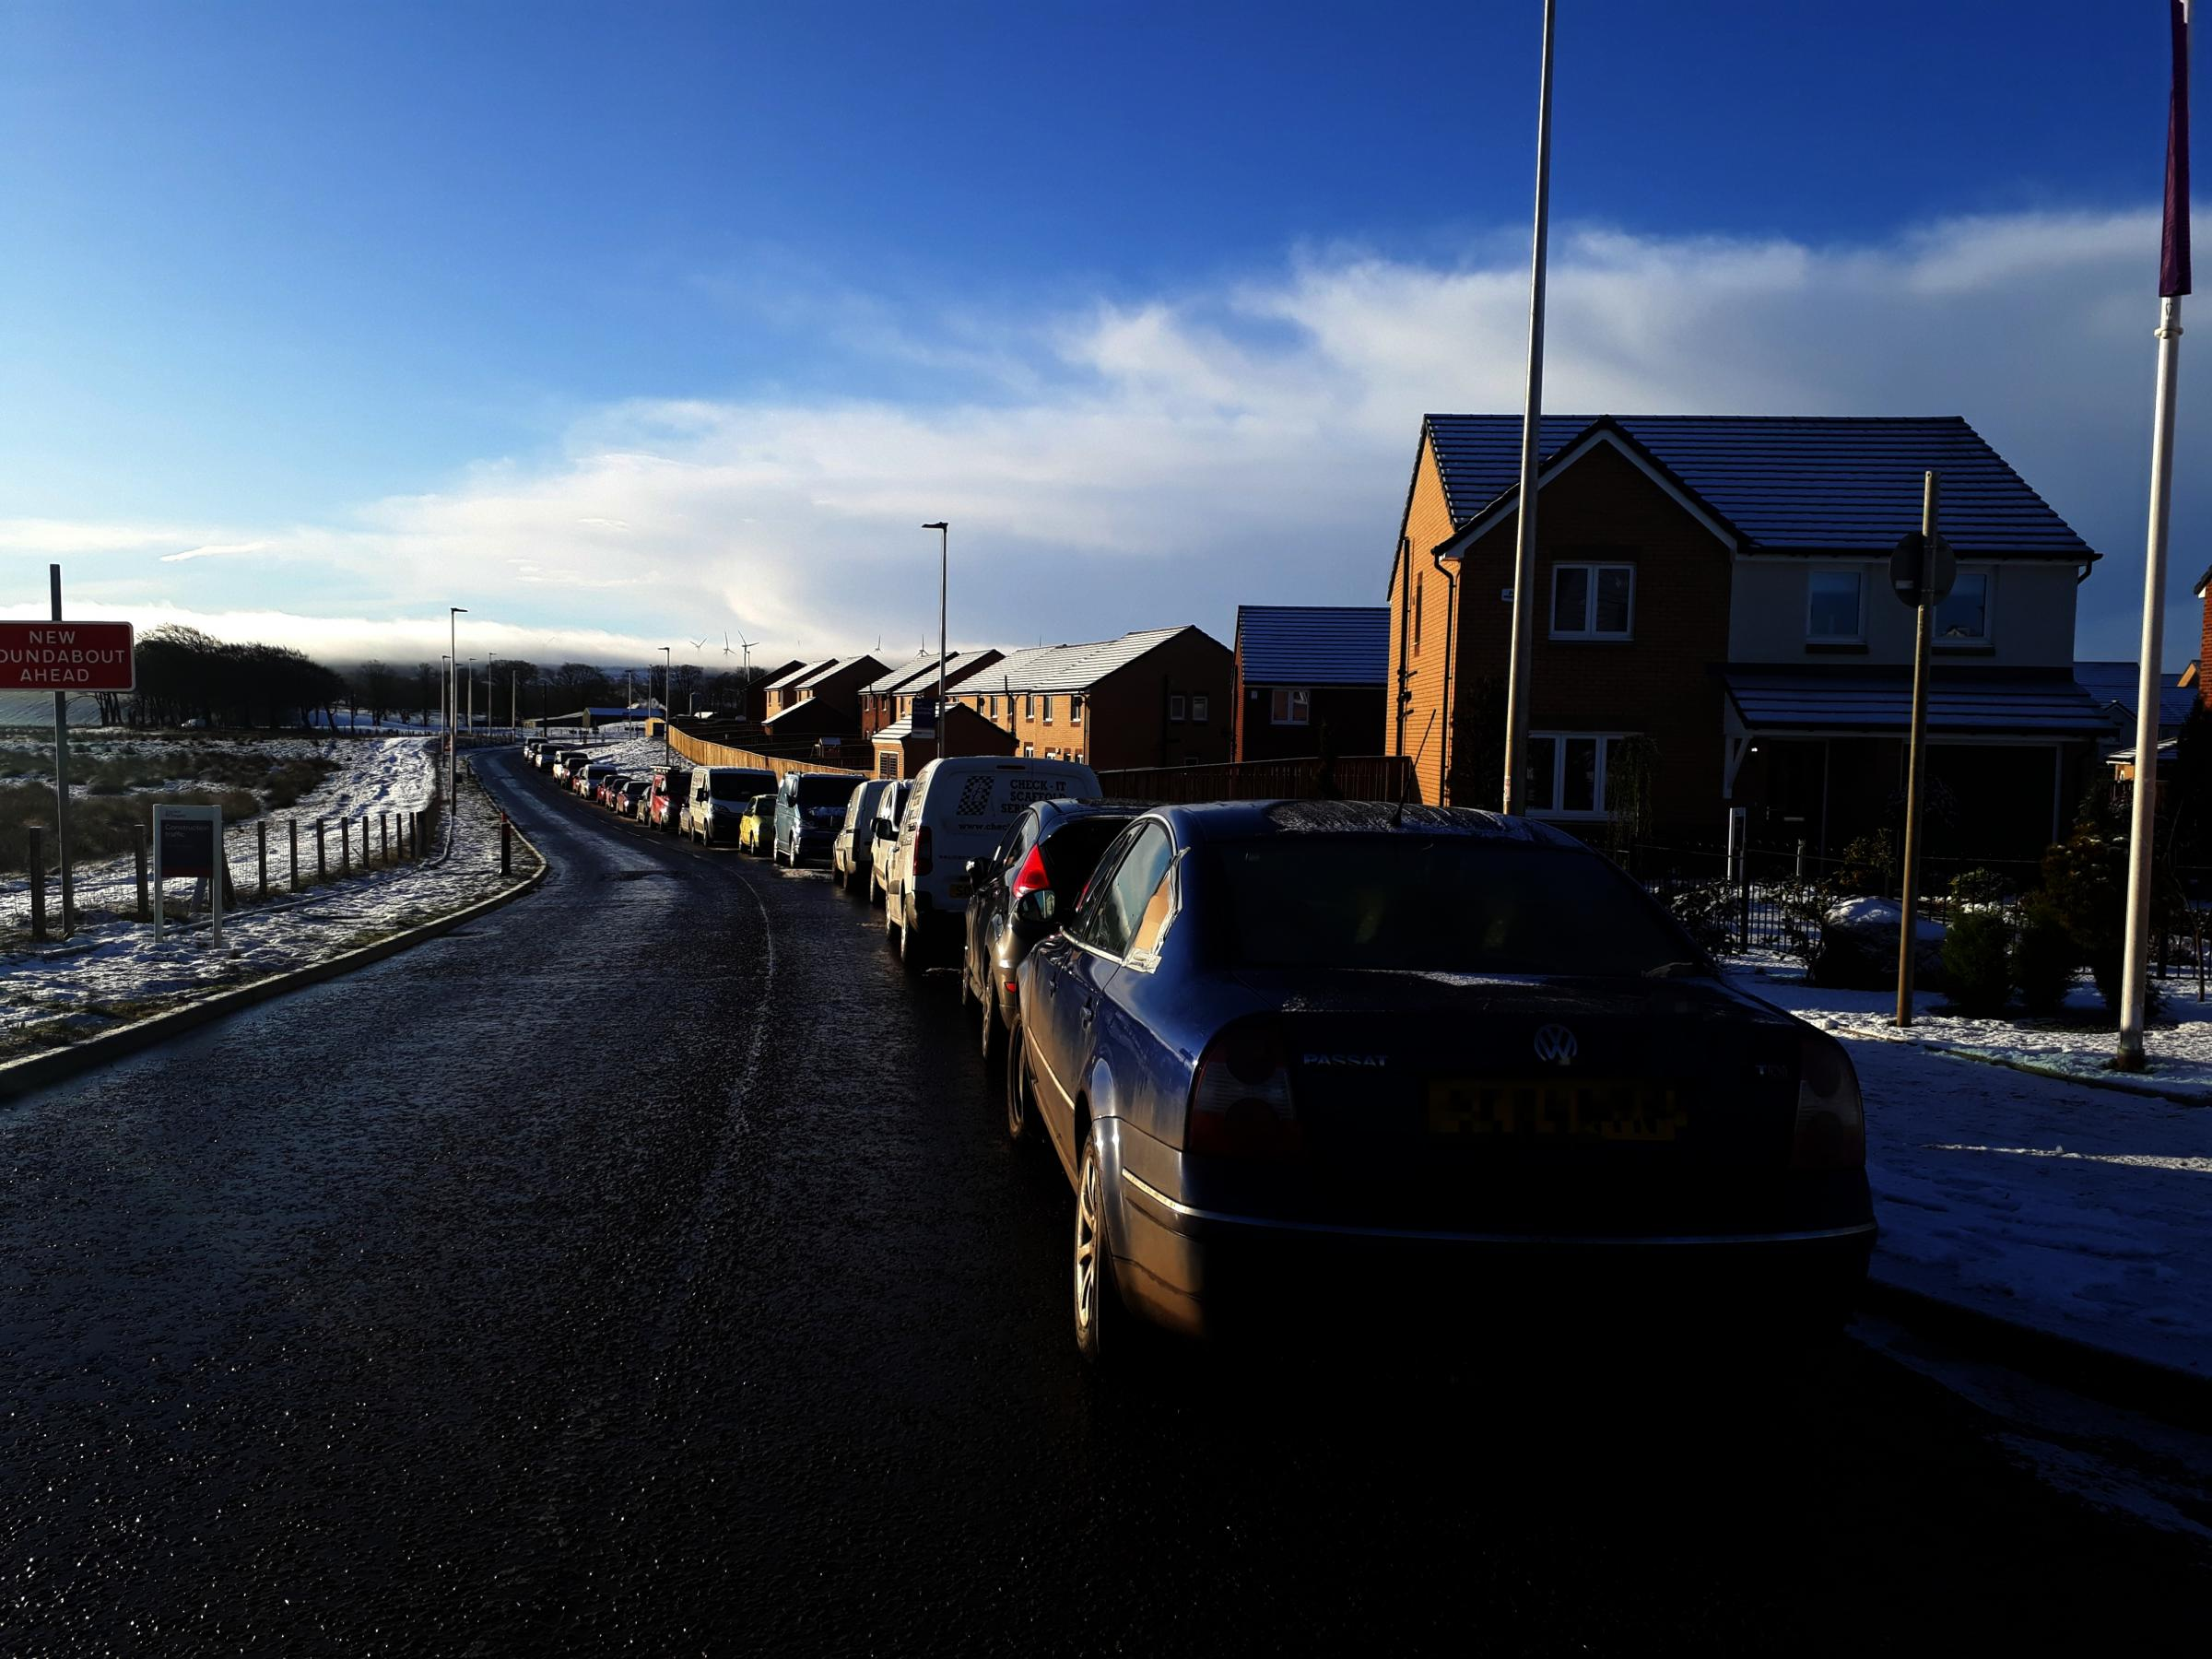 Cars parked along Auldhouse Road in East Kilbride have sparked accident fears